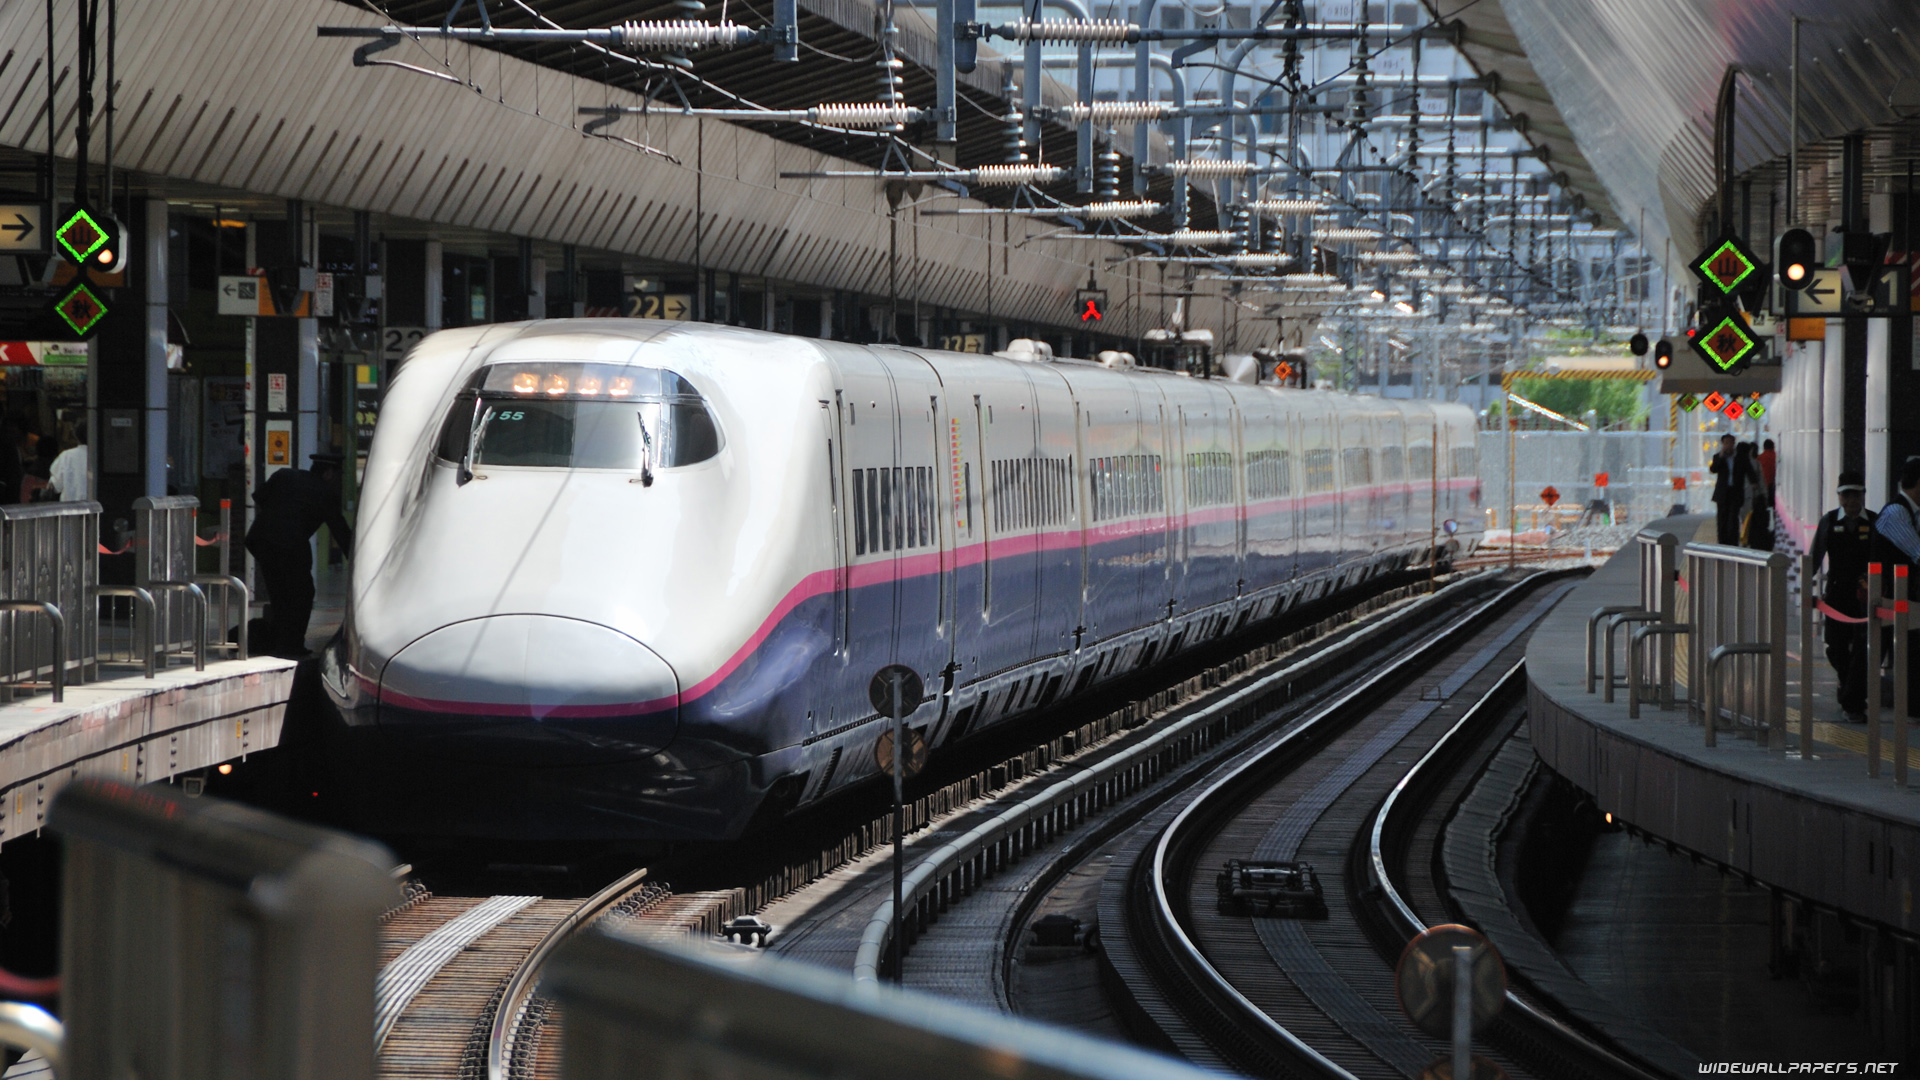 Japan High speed trains desktop wallpapers HD and wide 1920x1080